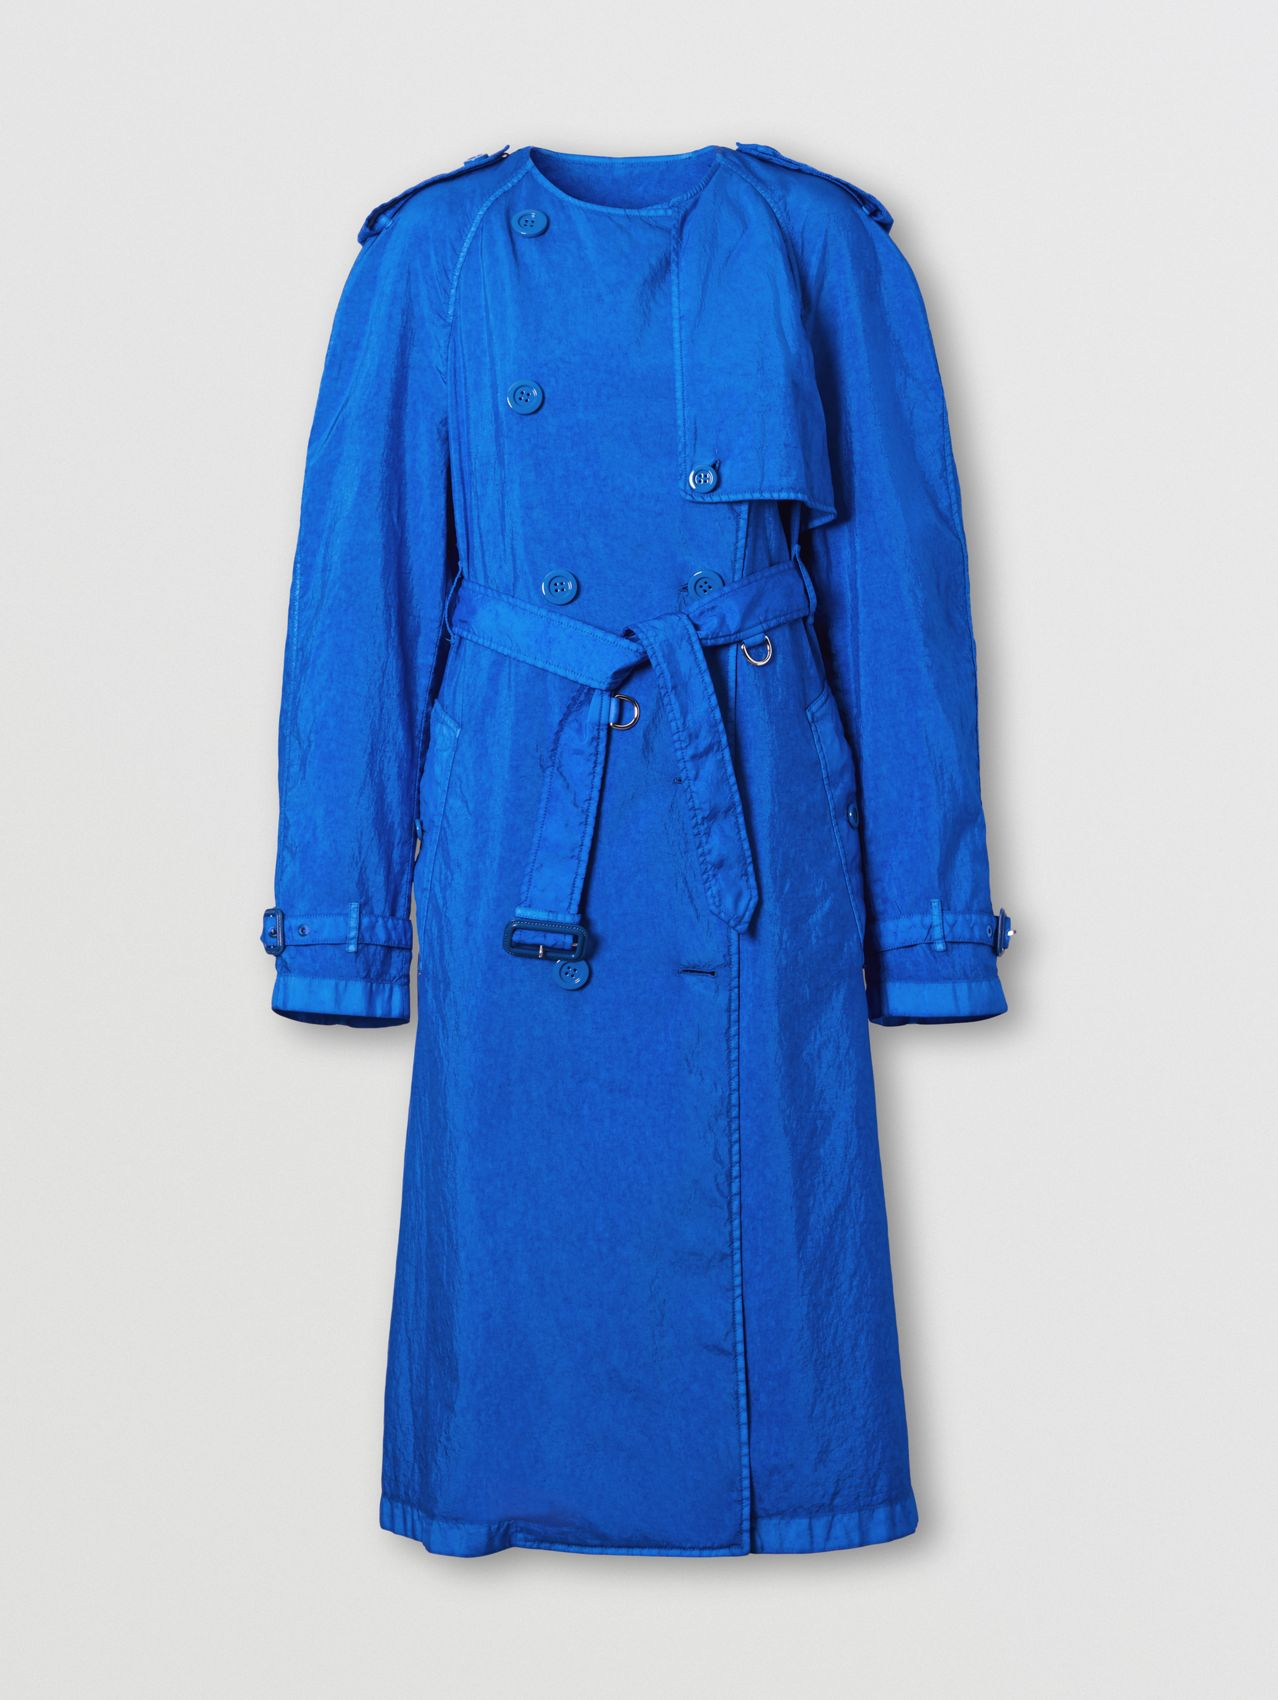 Trench coat senza colletto in tela tecnica (Blu Reale Caldo)